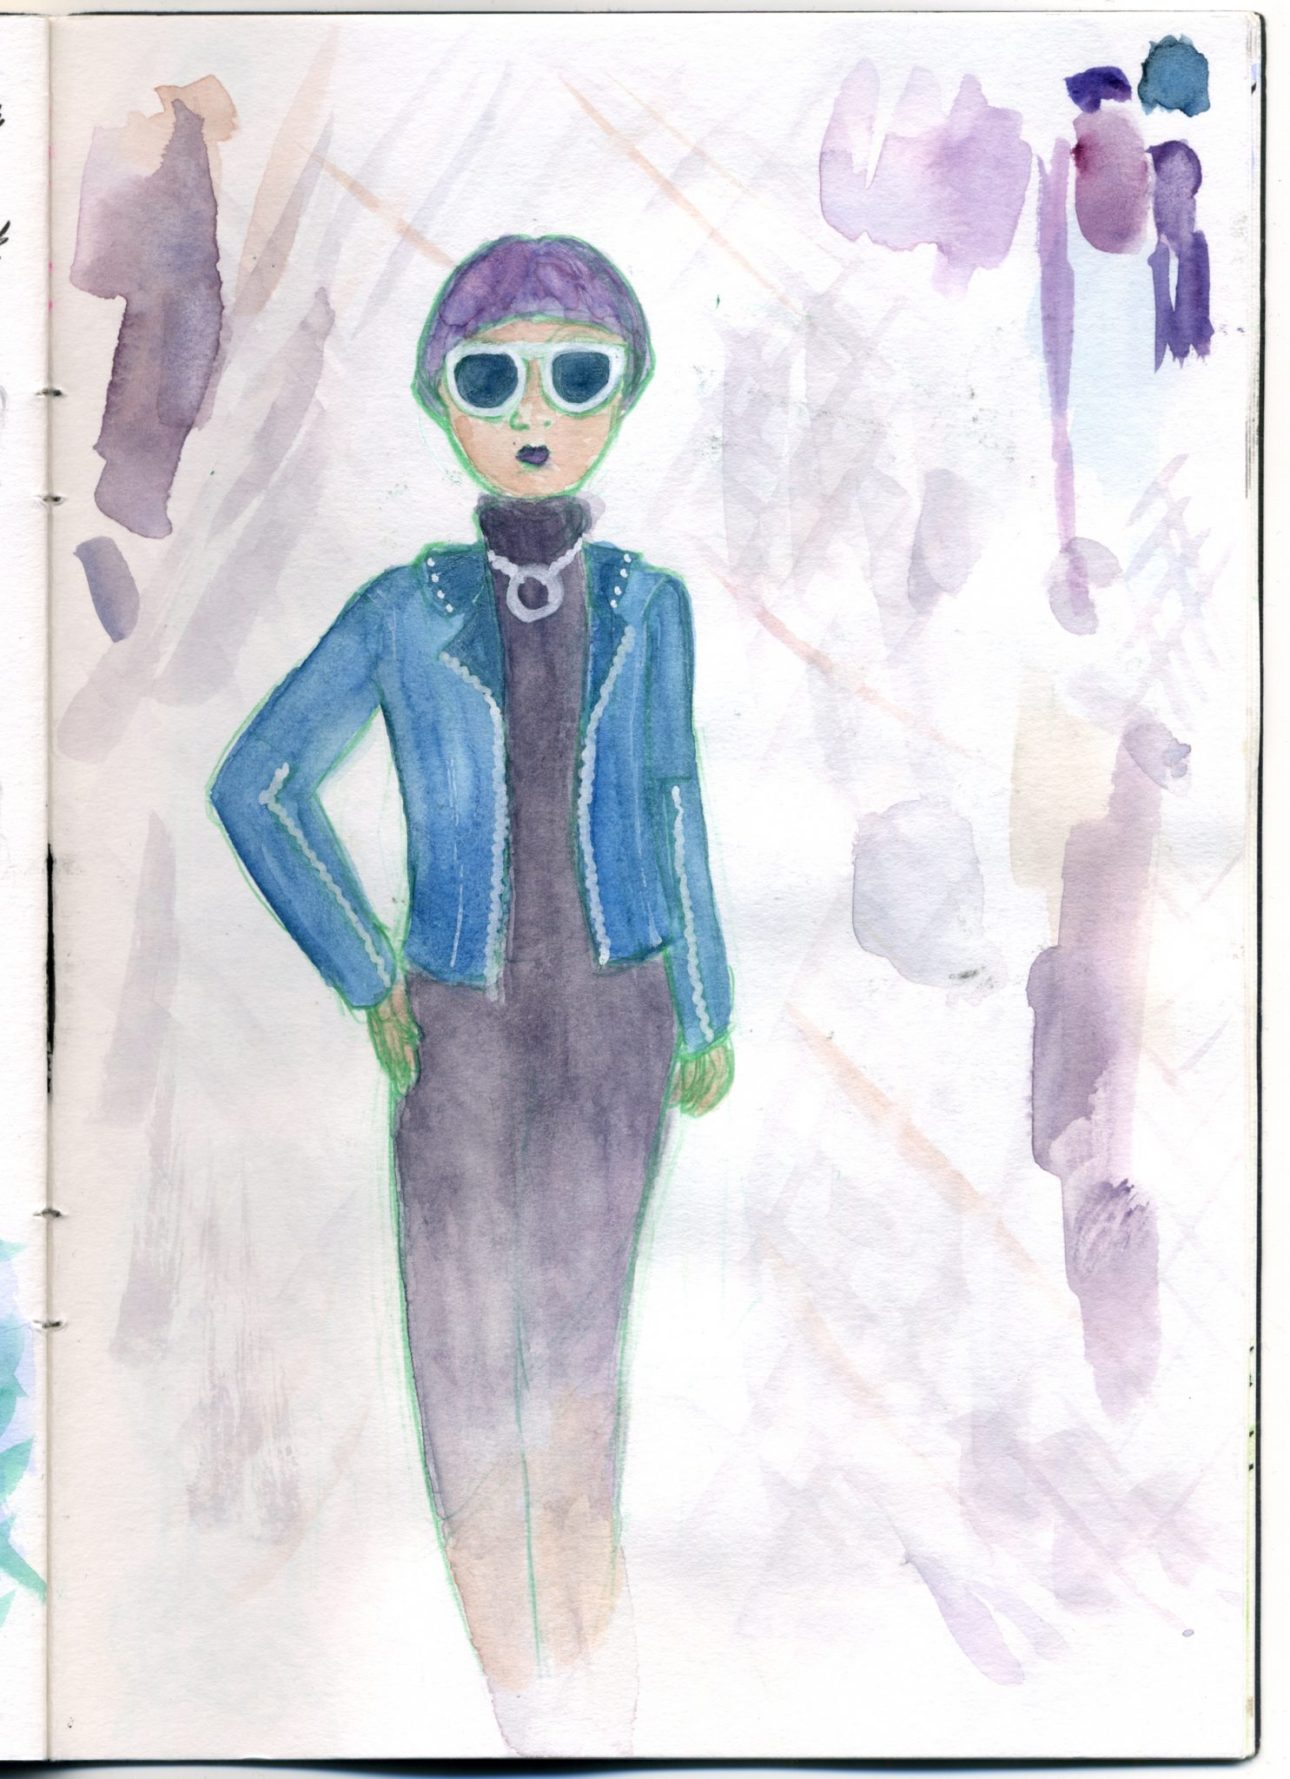 A watercolour sketch of a woman with short purple hair in a black dress that fades to transparent near the knee and a blue jacket.